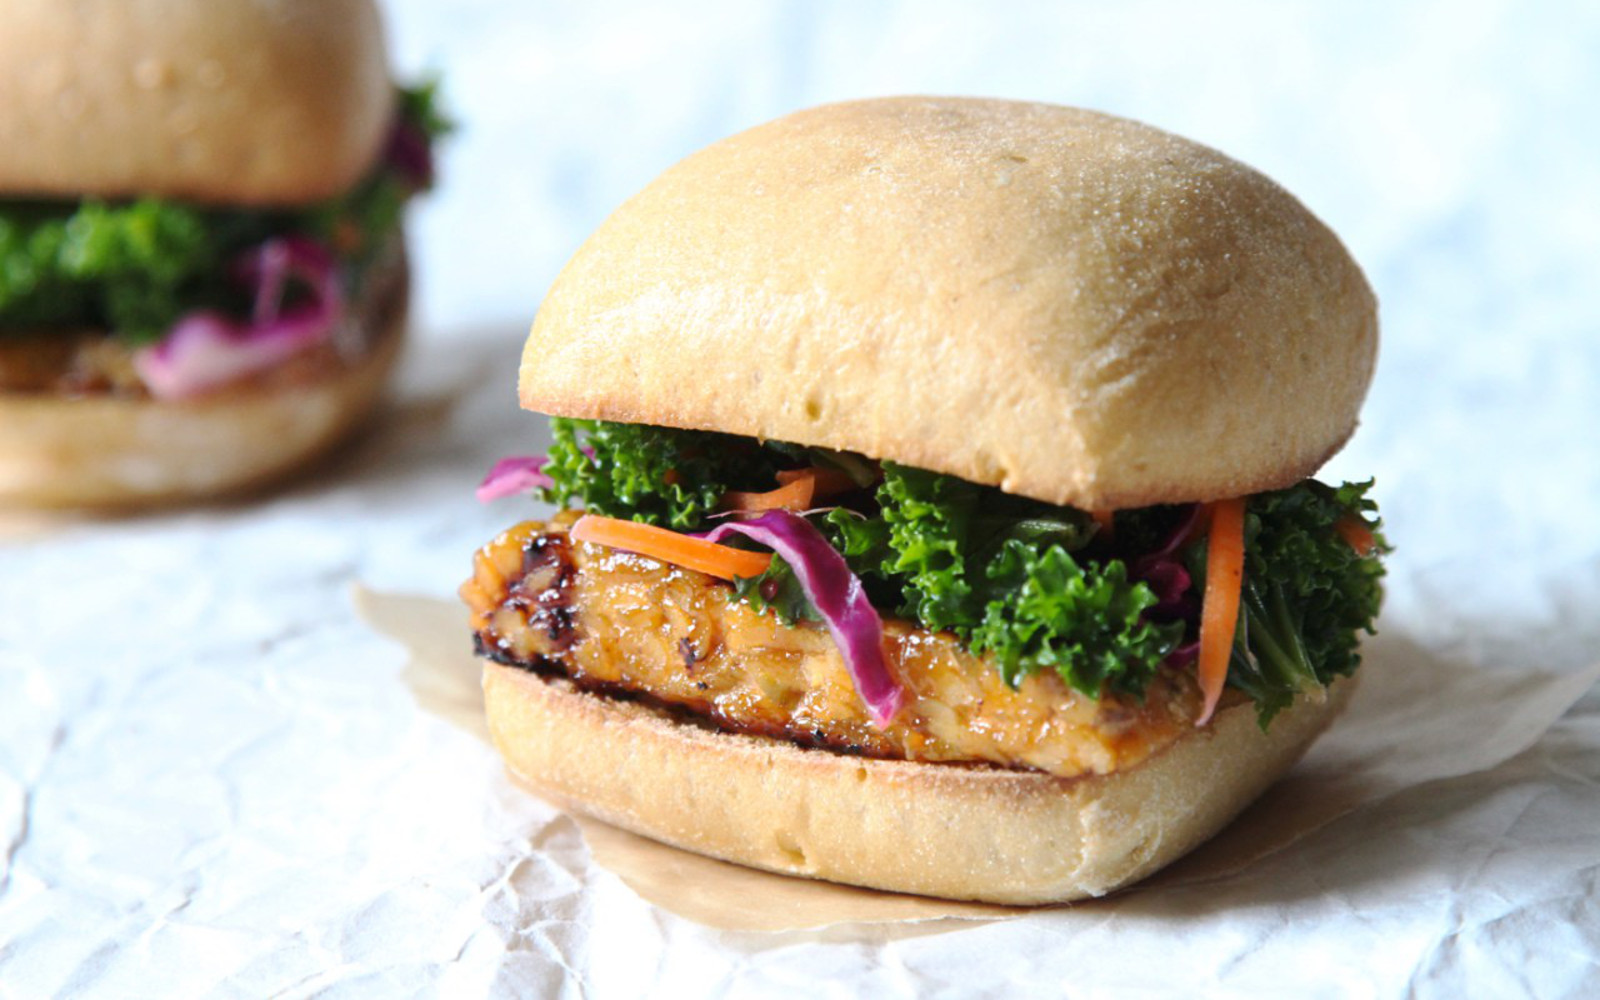 Grilled Barbecue Tempeh Slider With Kale Slaw